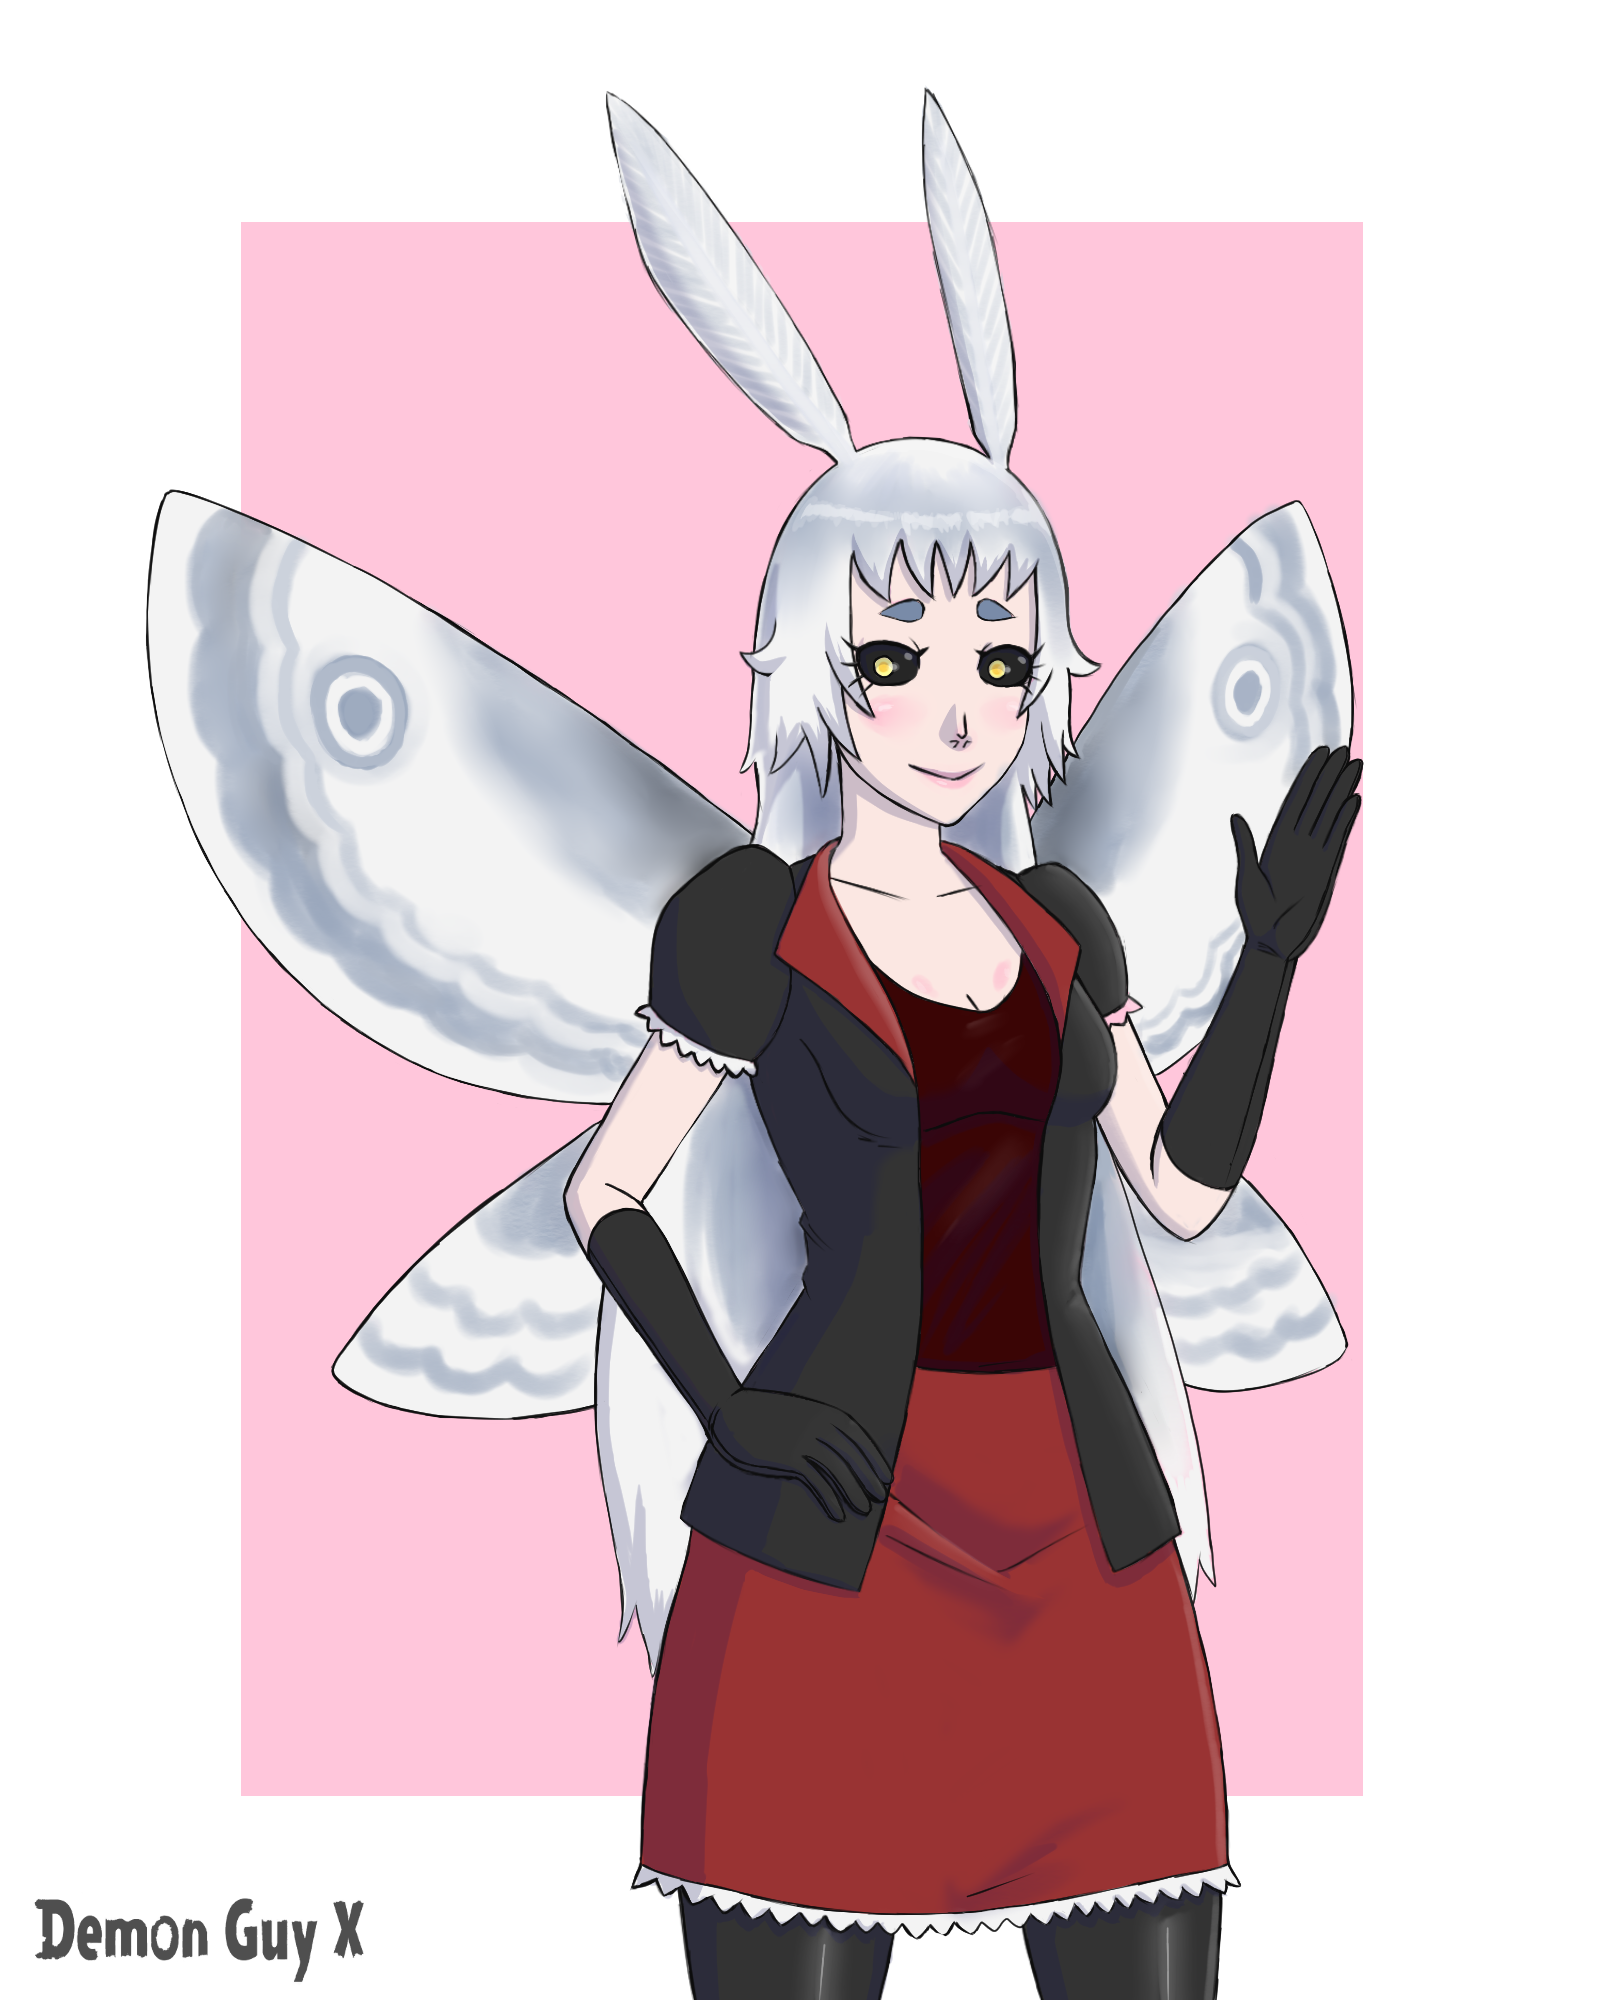 Oddlem's Moth Girl